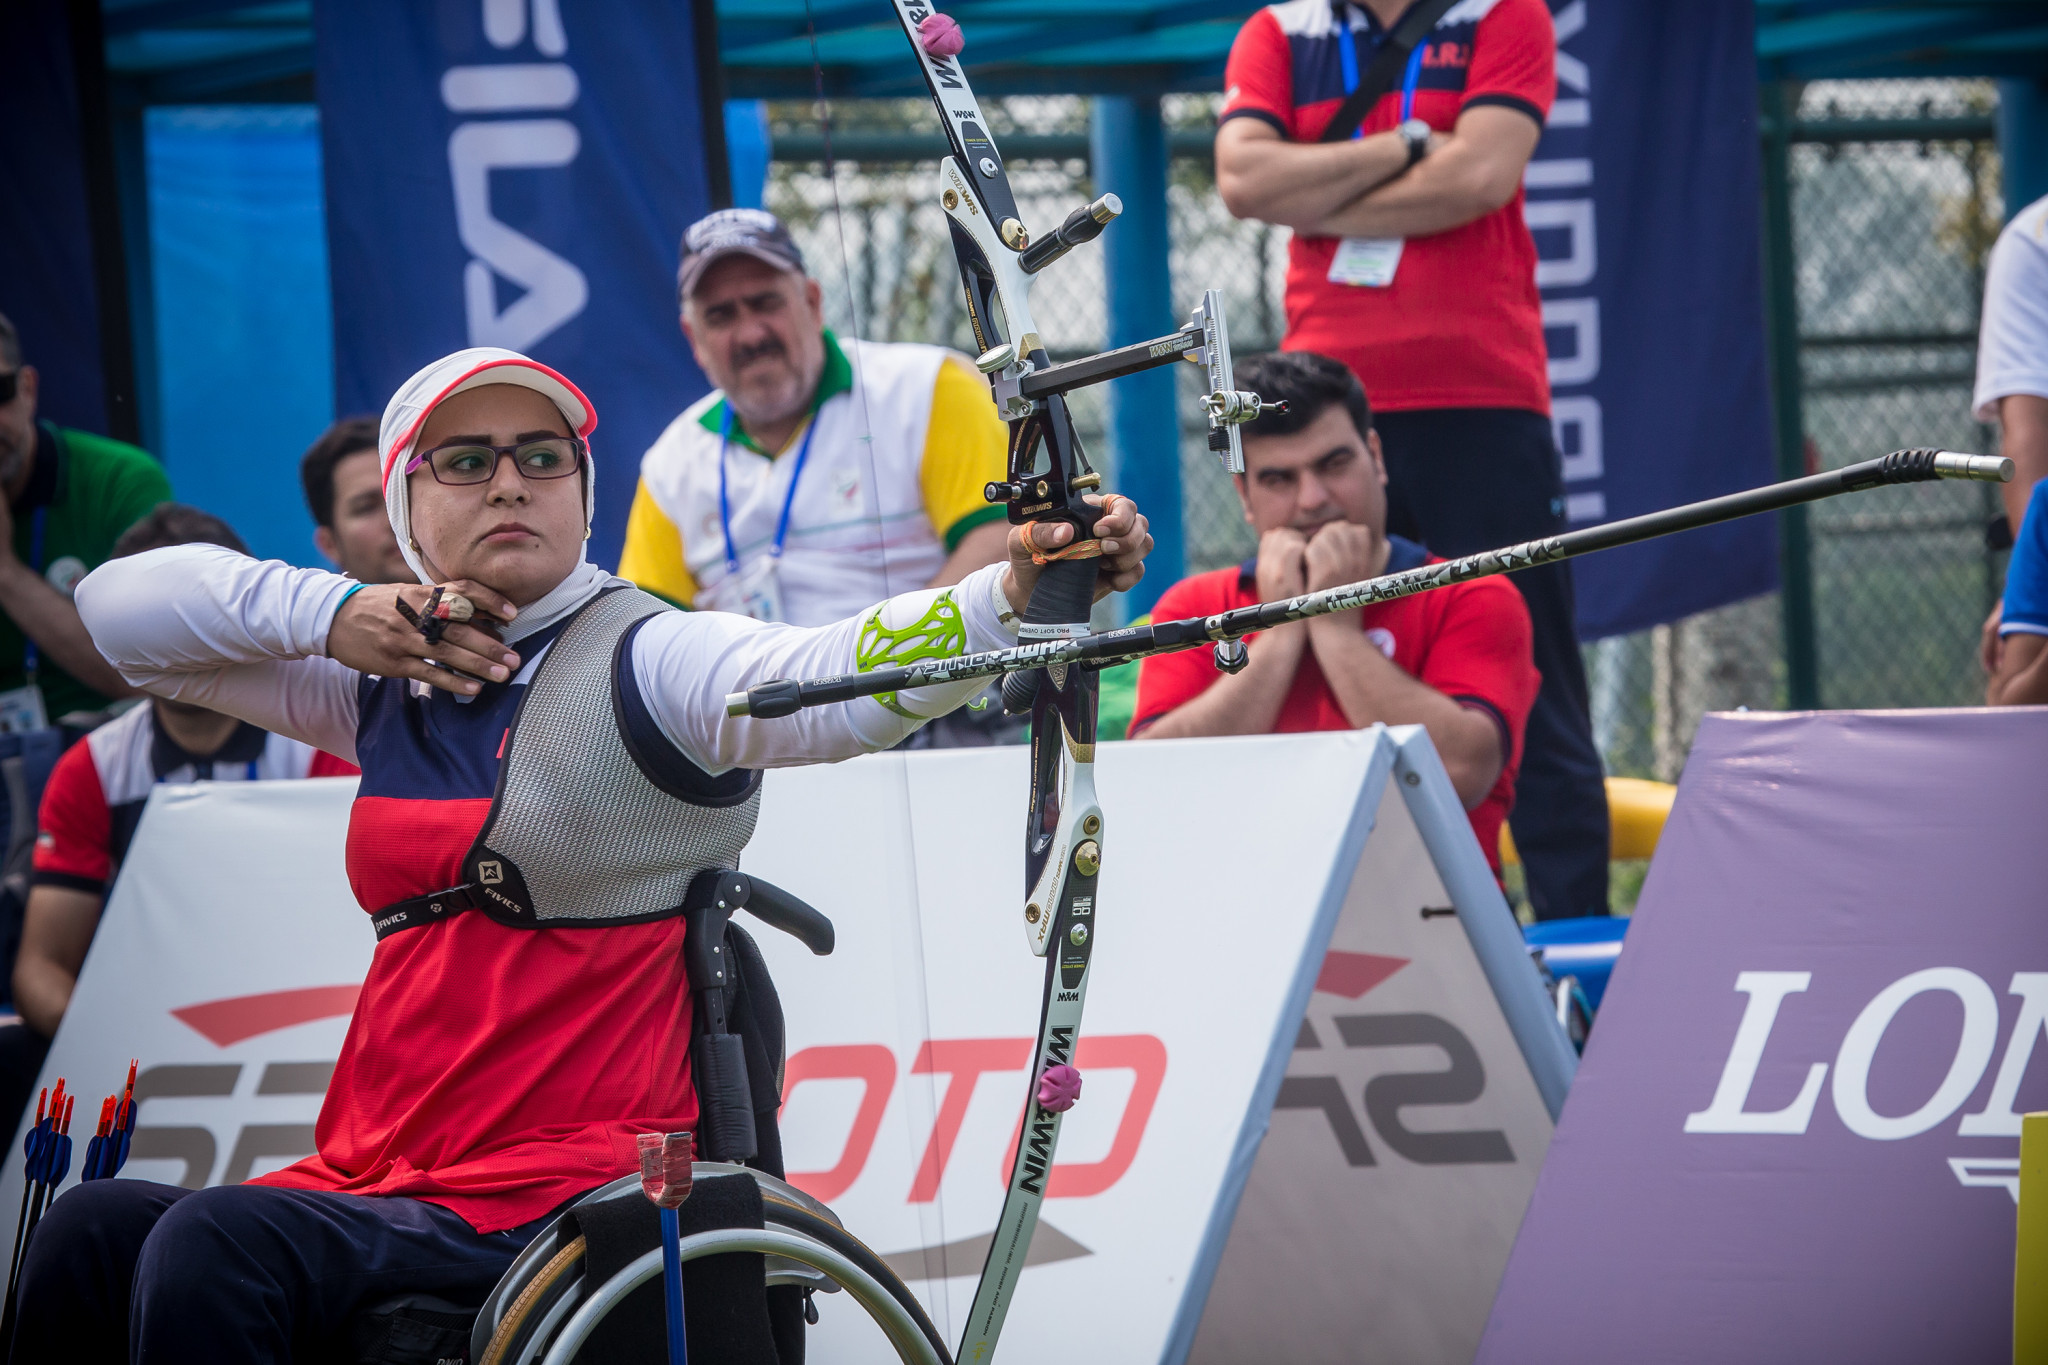 Iranian archer Zahra Nemati is in contention for the September award ©Getty Images